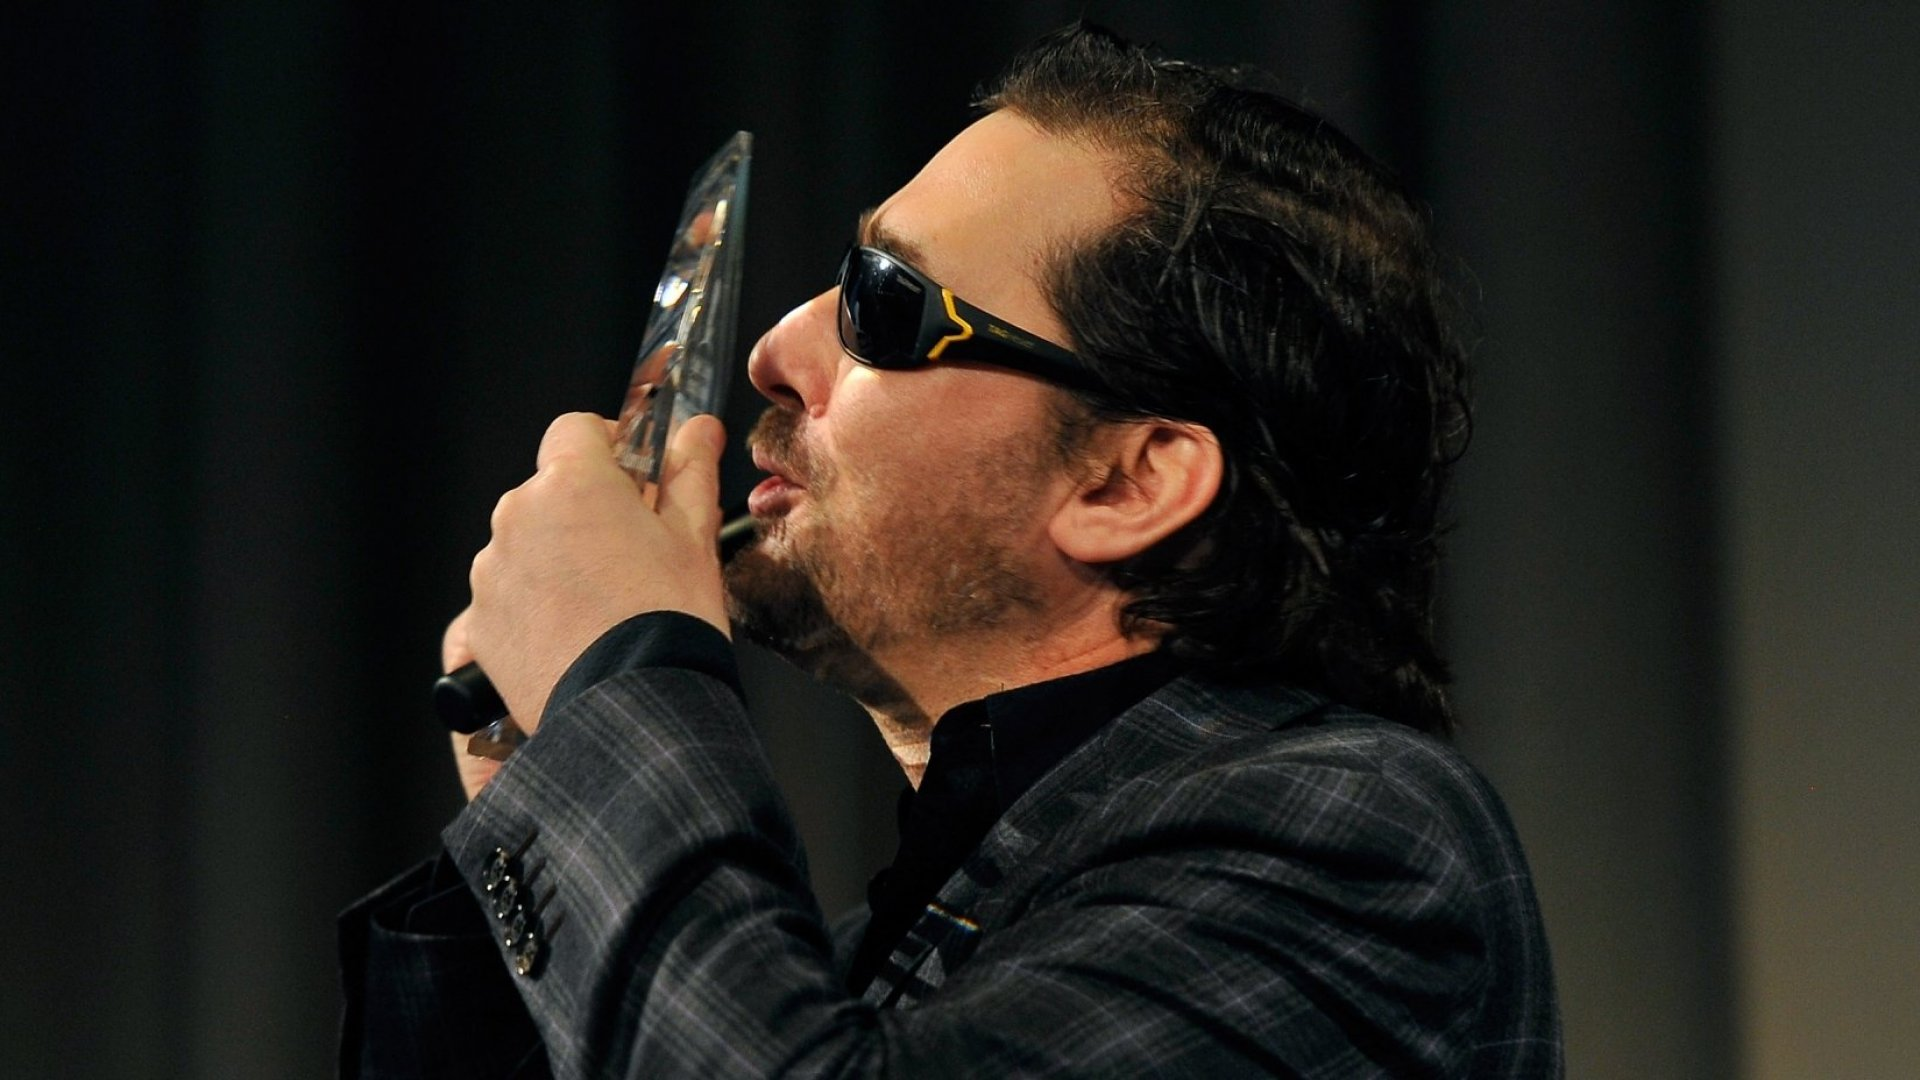 4 Tips for Managing Your Emotions from 'Poker Brat' Phil Hellmuth